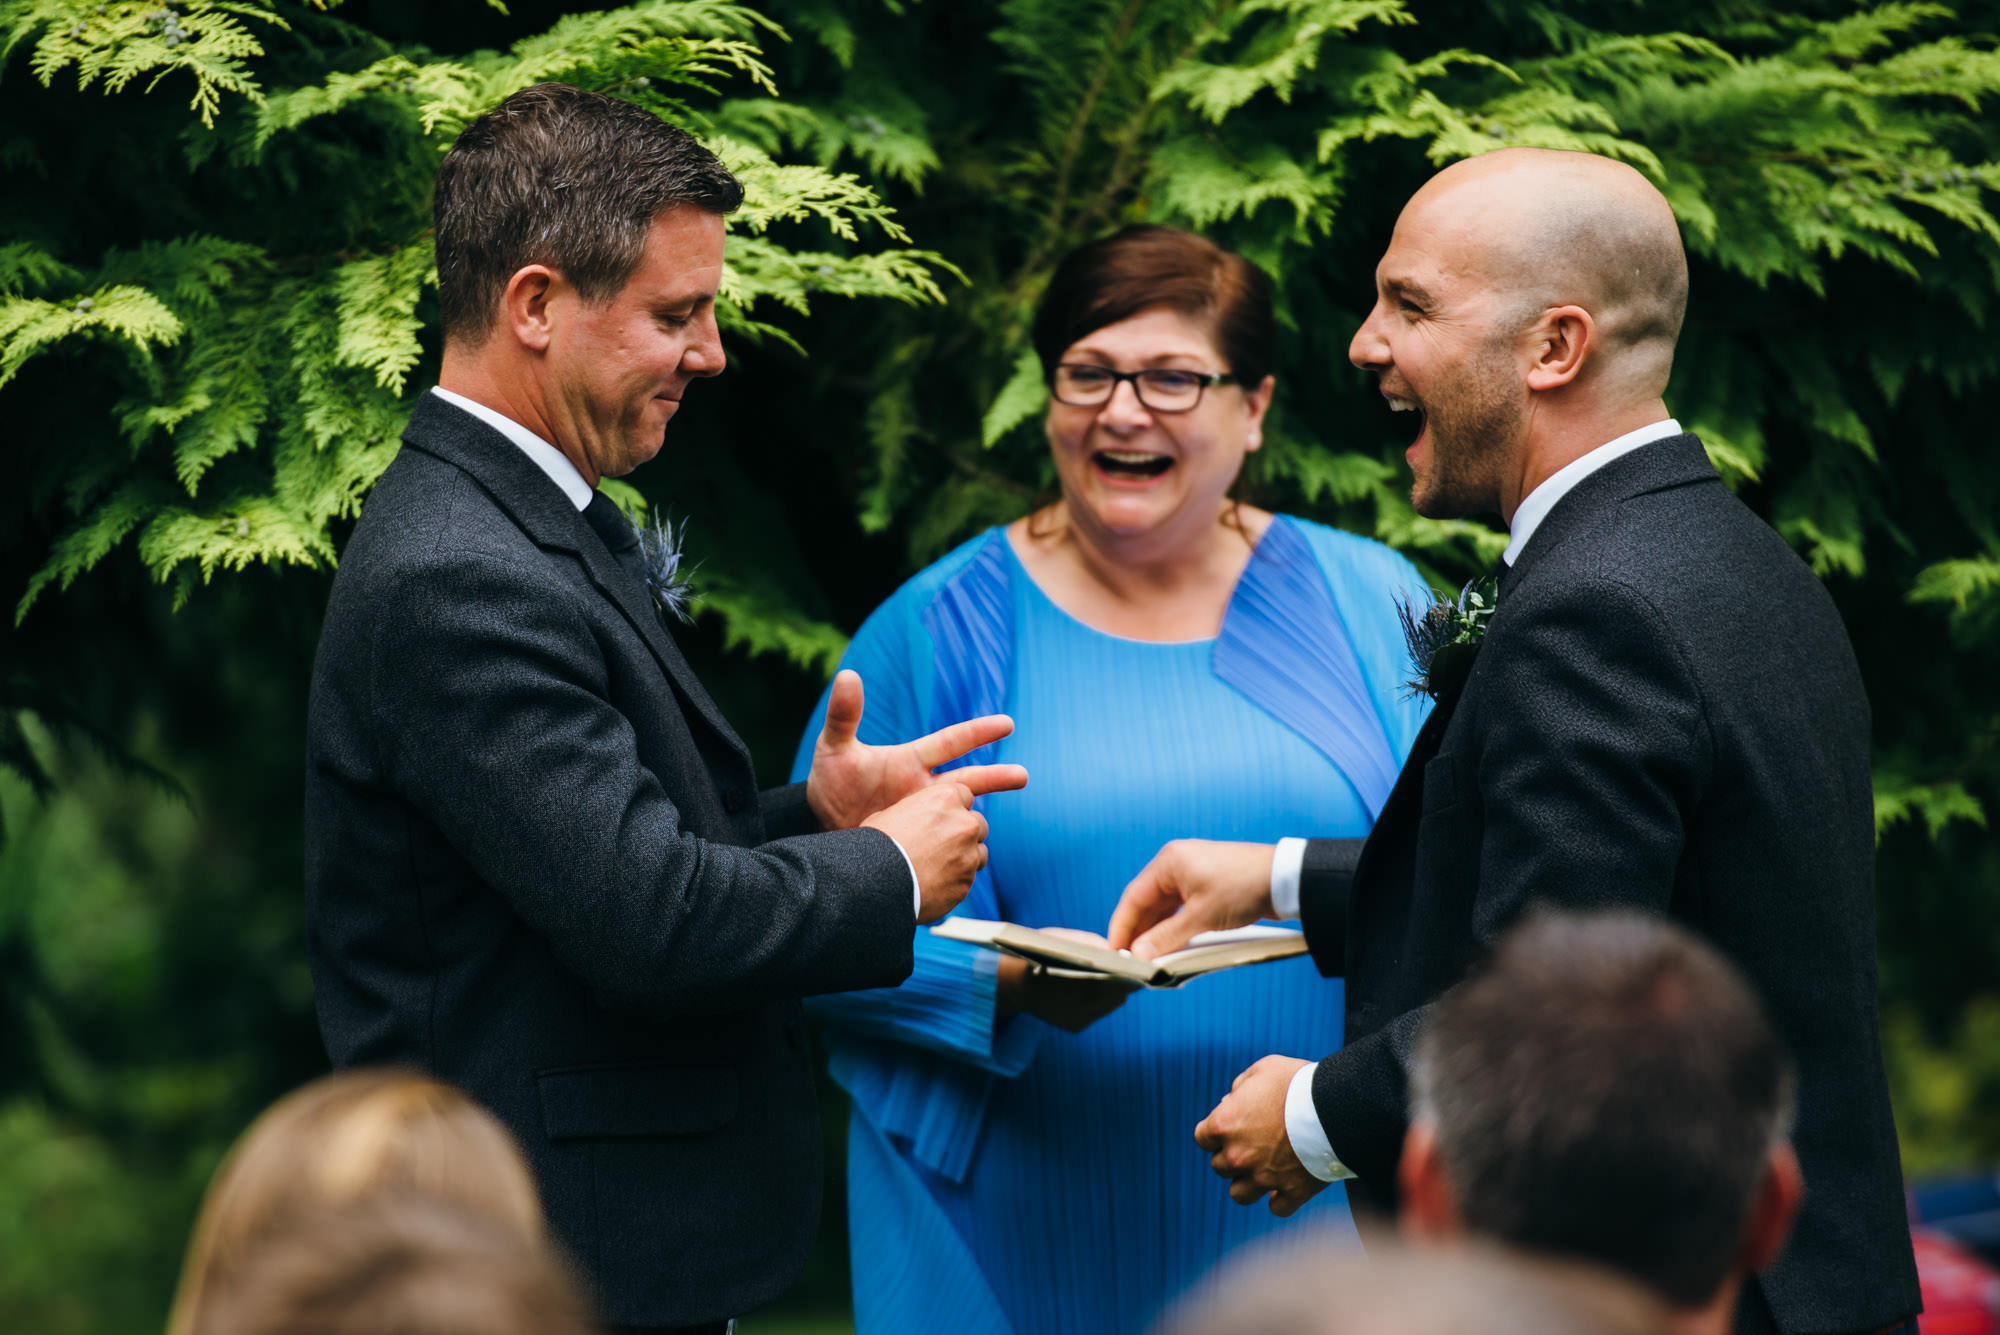 Tonedale house gay wedding ceremony